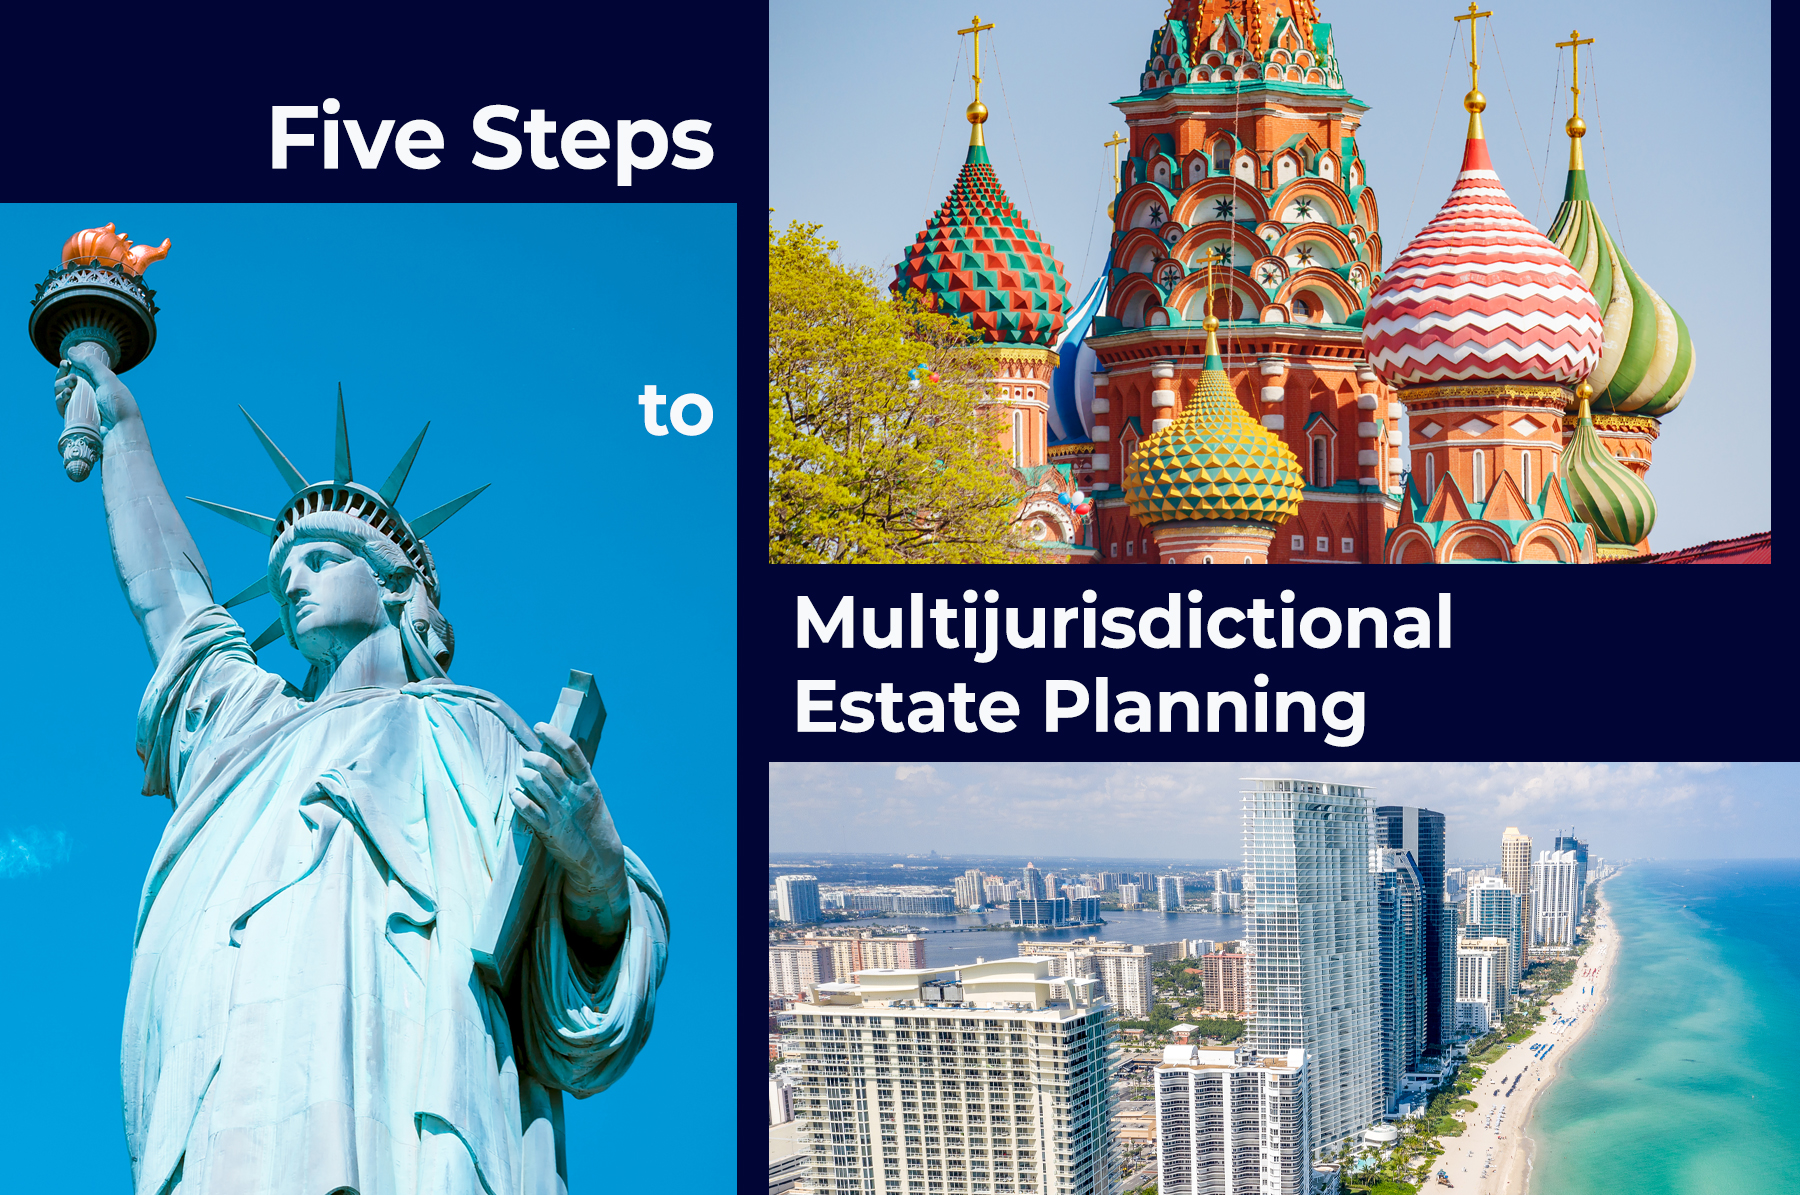 """the Statue of Liberty, the Russian colorful basilica and an aerial view of Miami's coastline with the title """"Five Steps to Multijurisdictional Estate Planning"""""""